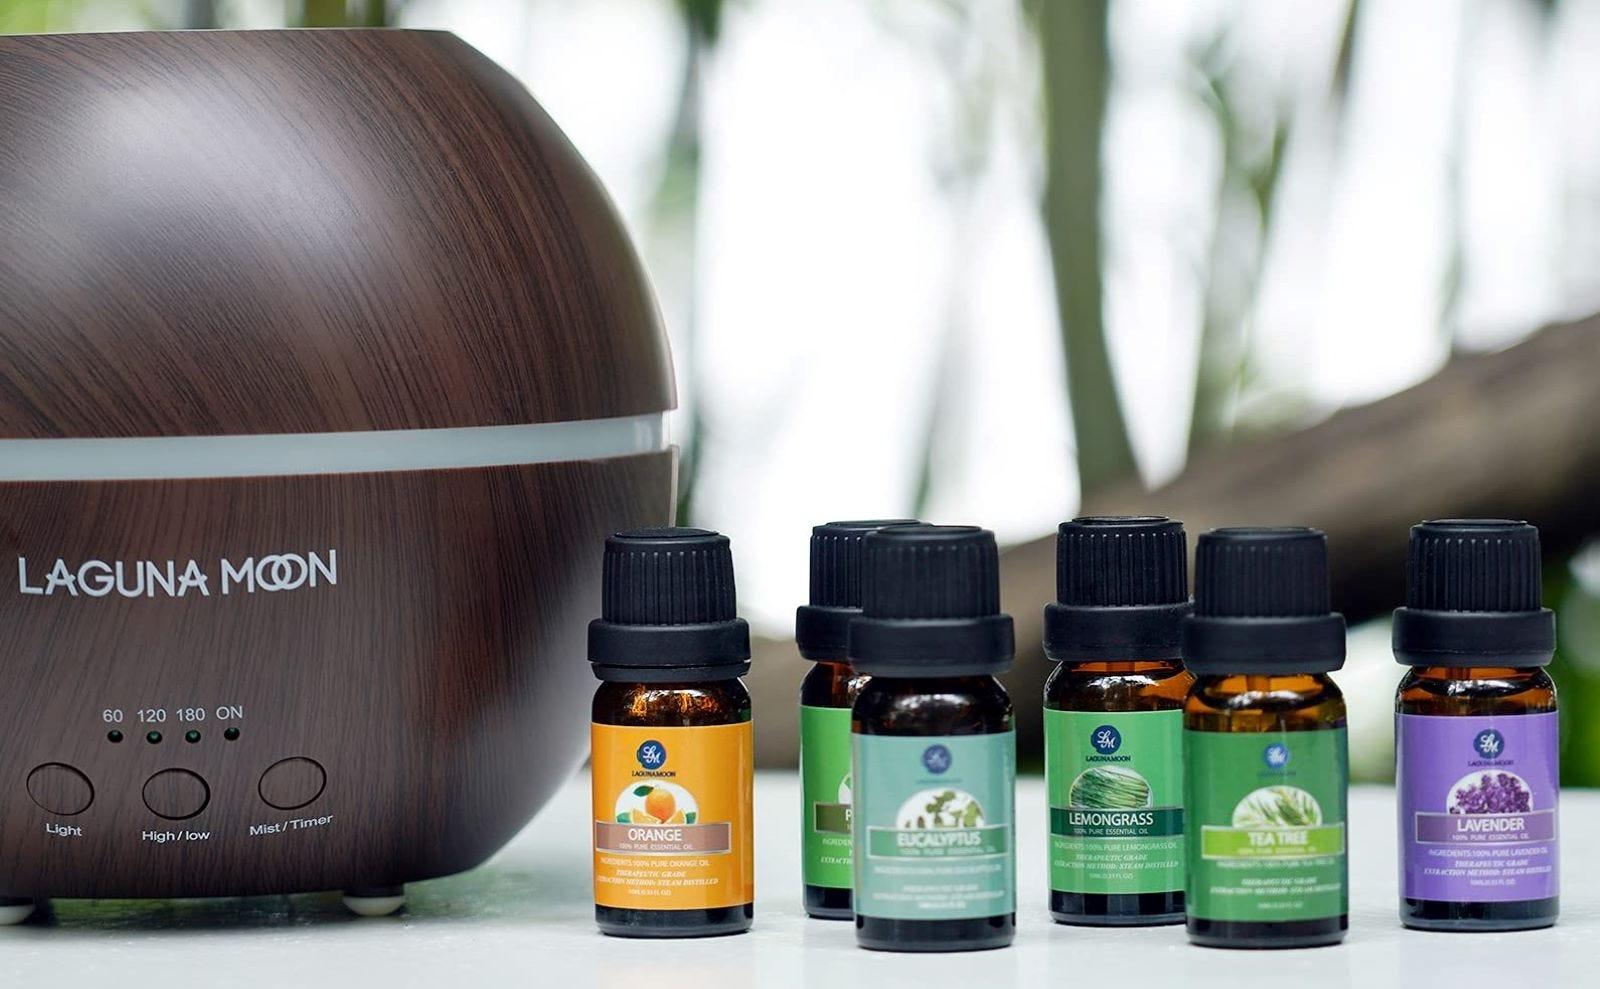 Six bottles of Laguna Moon essential oils next to the diffuser.